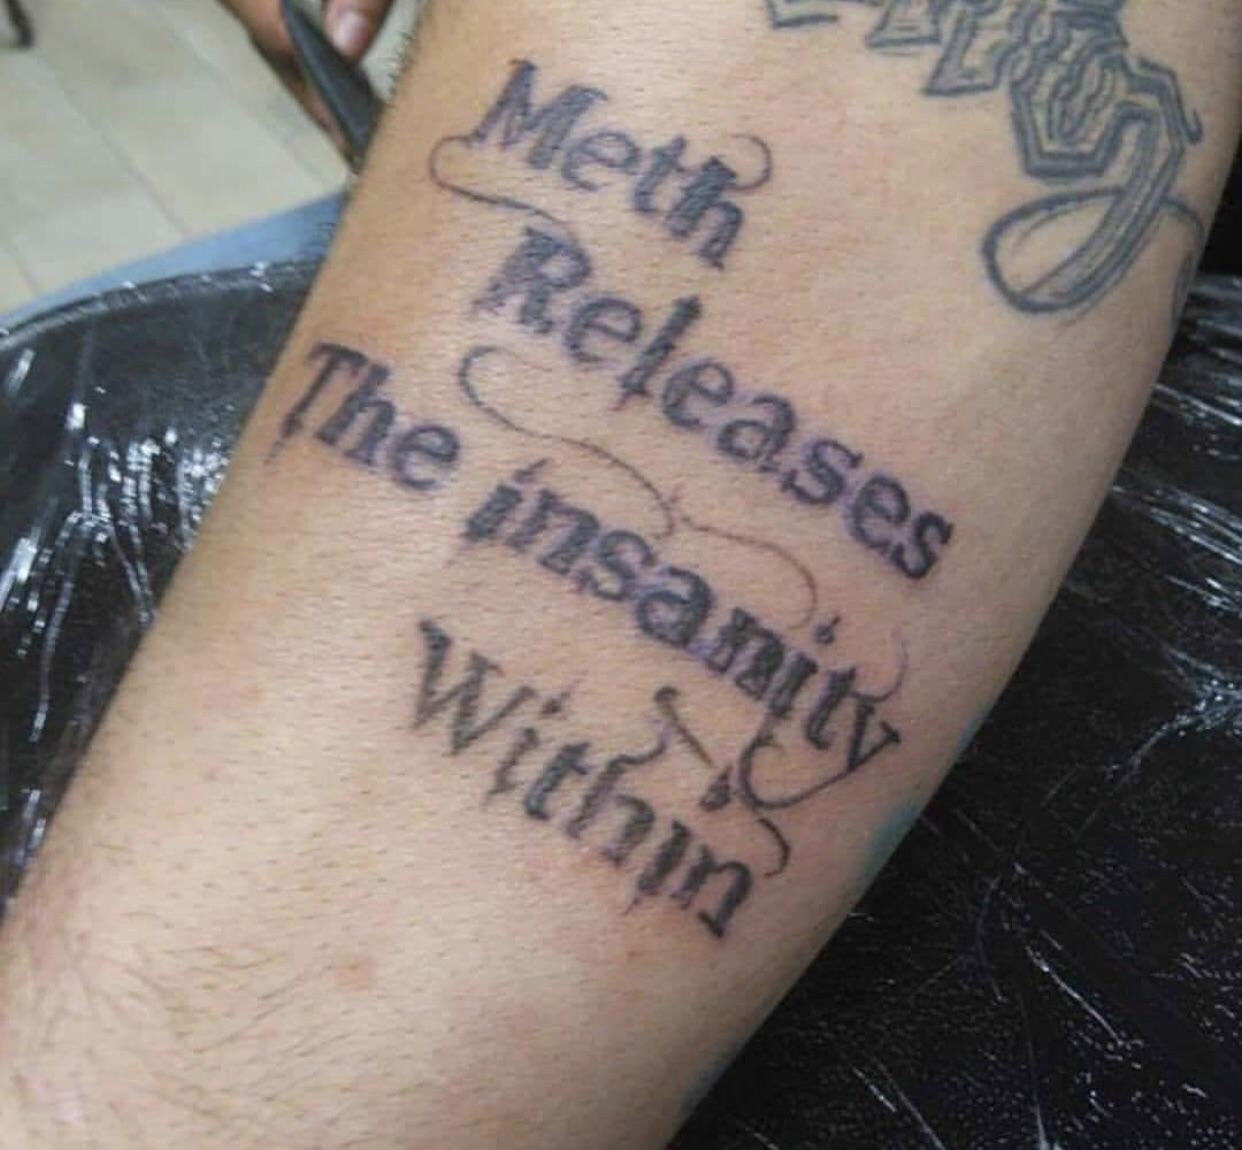 Insane meth tattoo posted by laser removal place : trashy